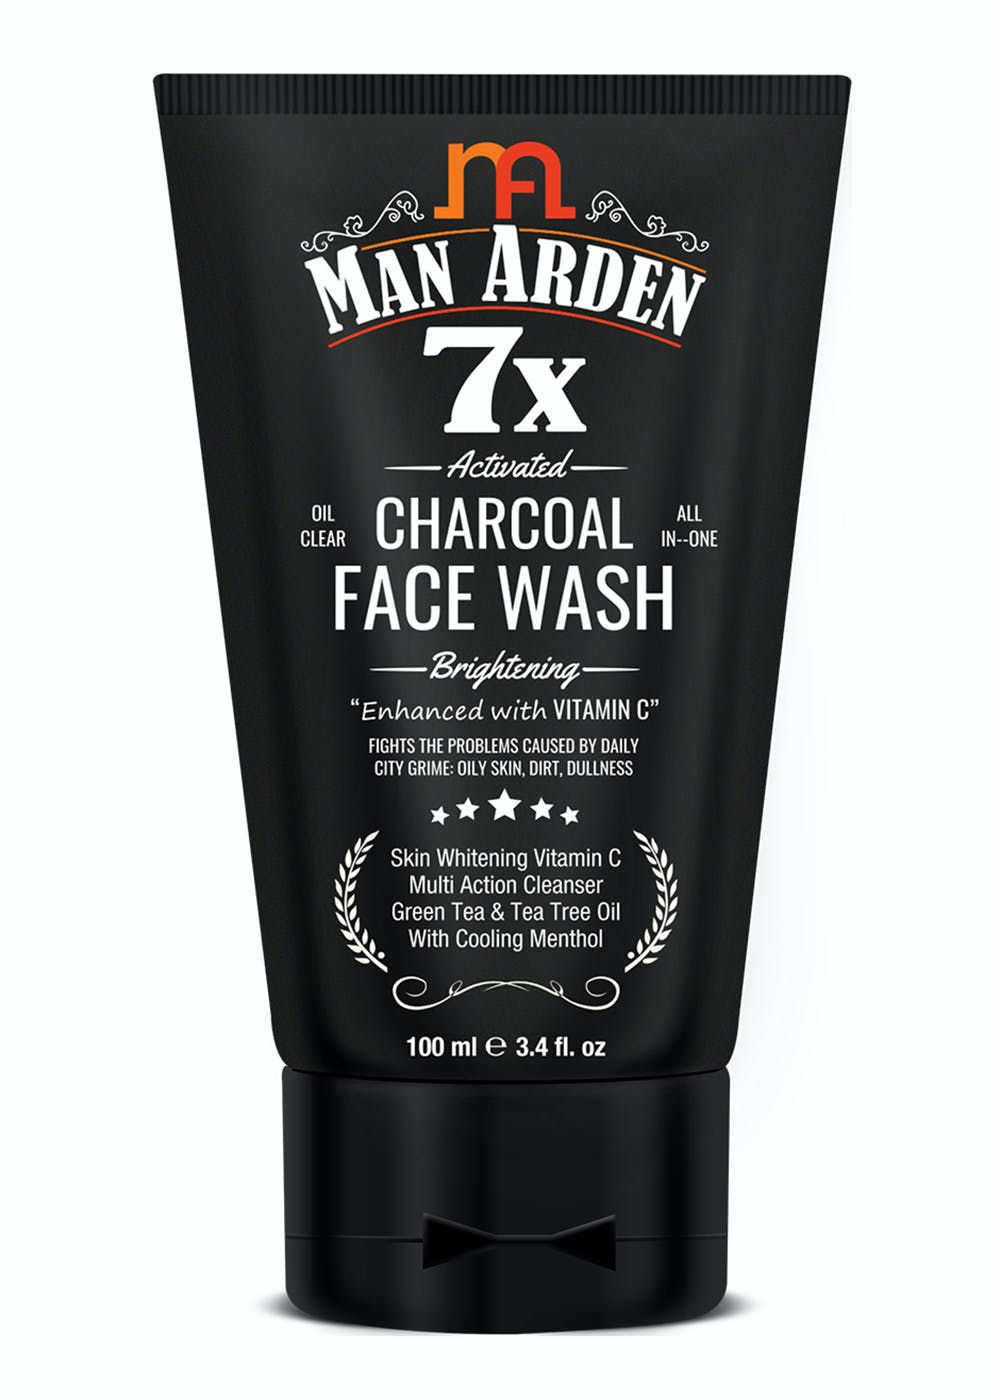 7X Activated Charcoal Face Wash Brightening - 100ml